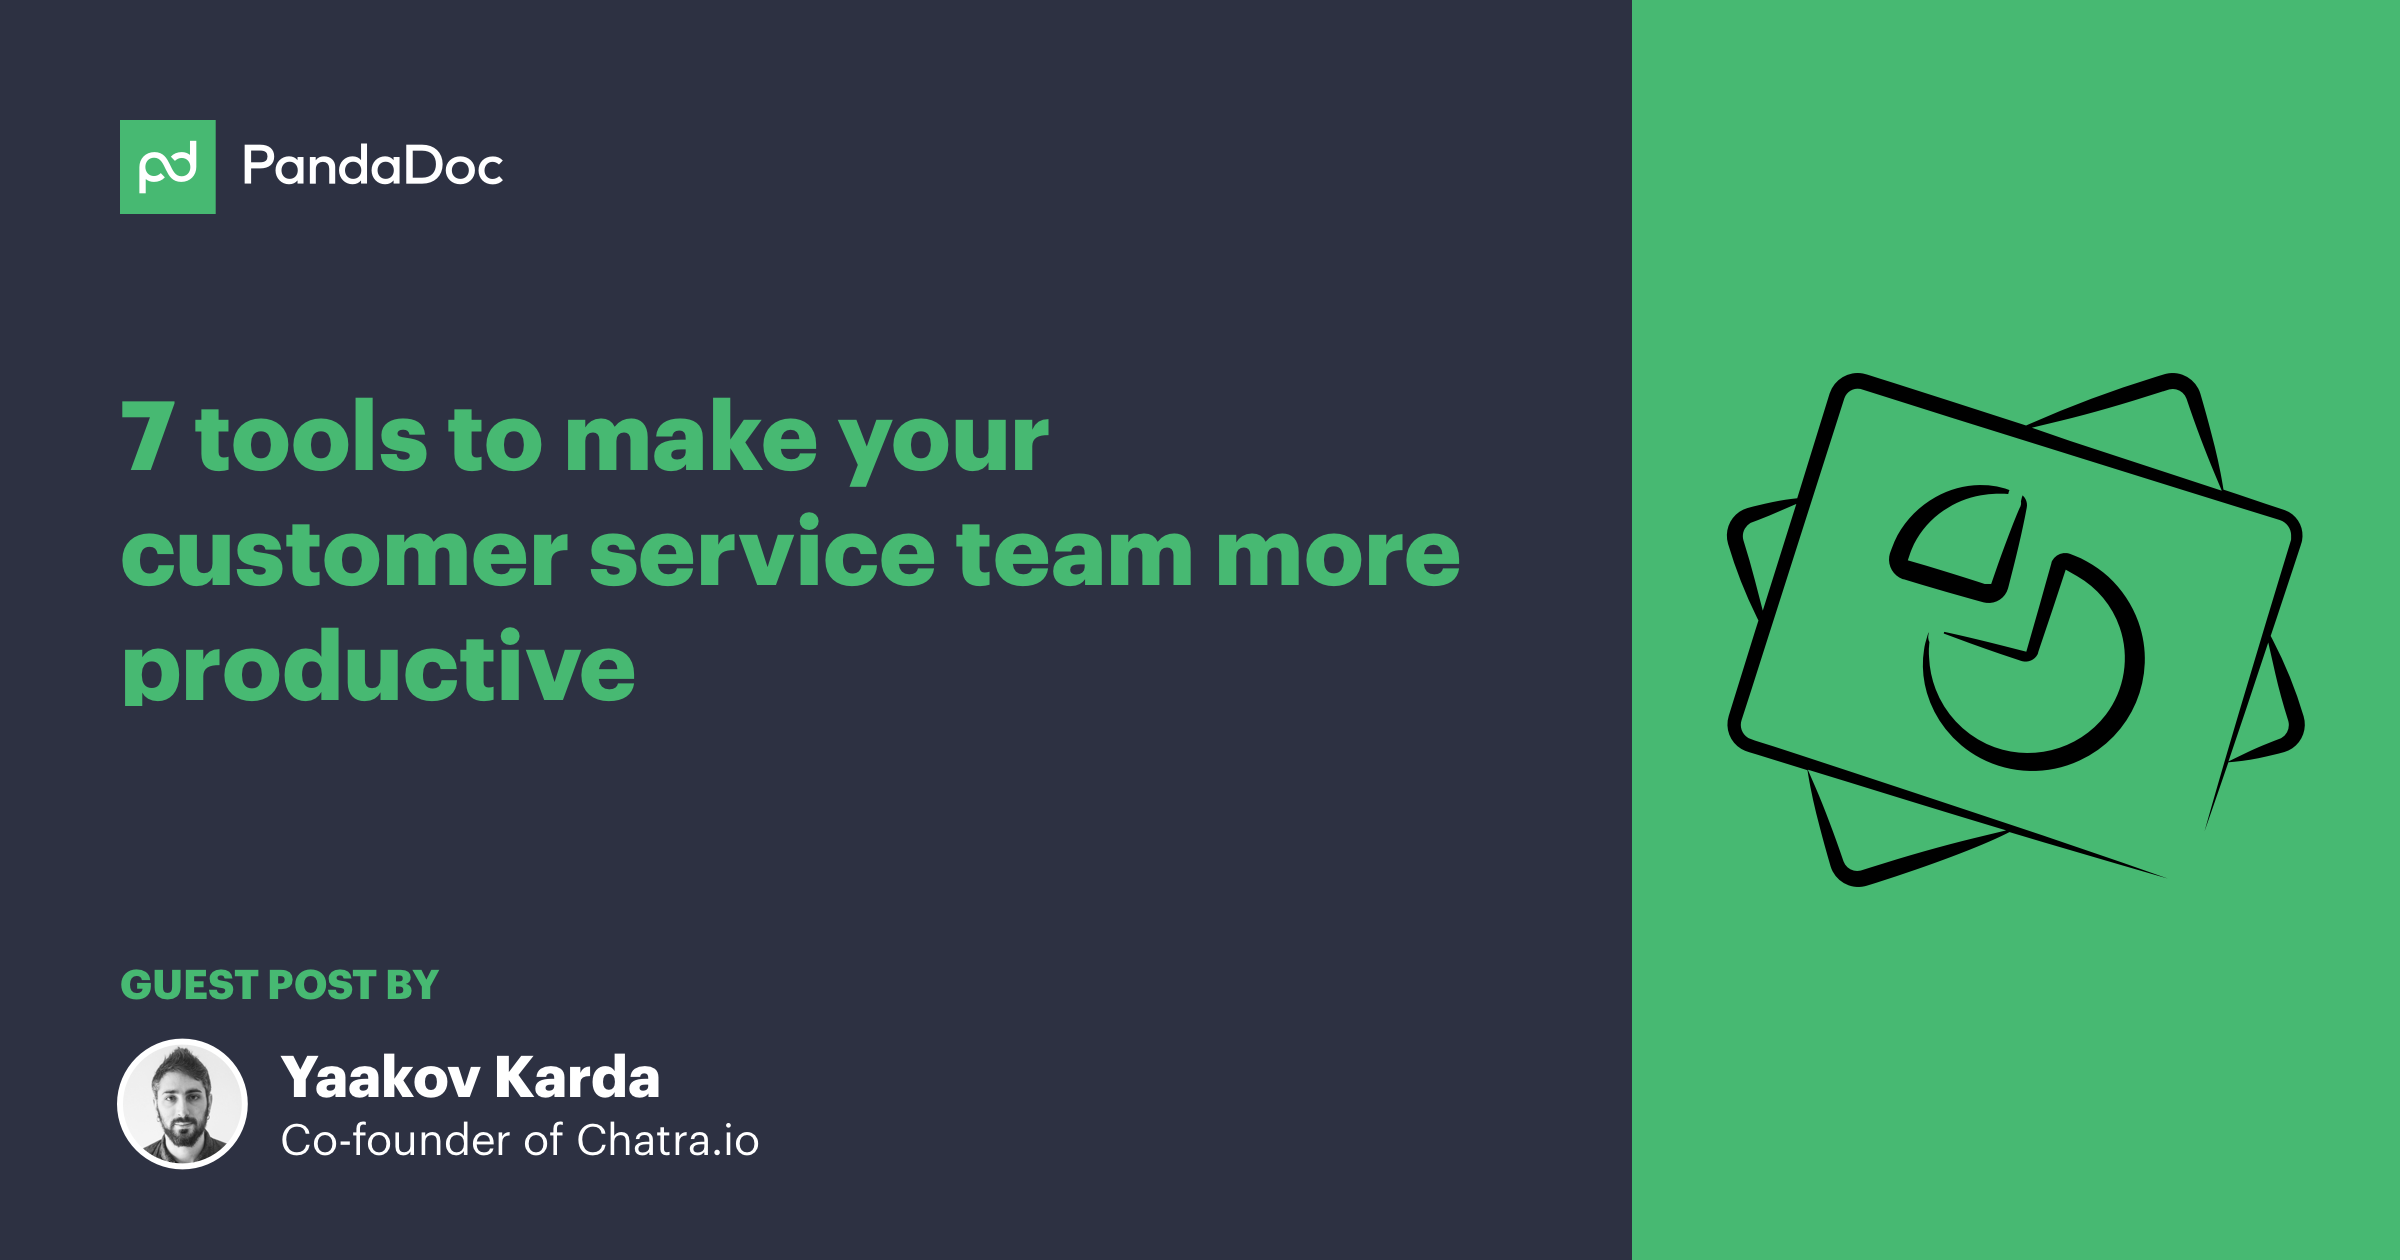 7 tools to make your customer service team more productive